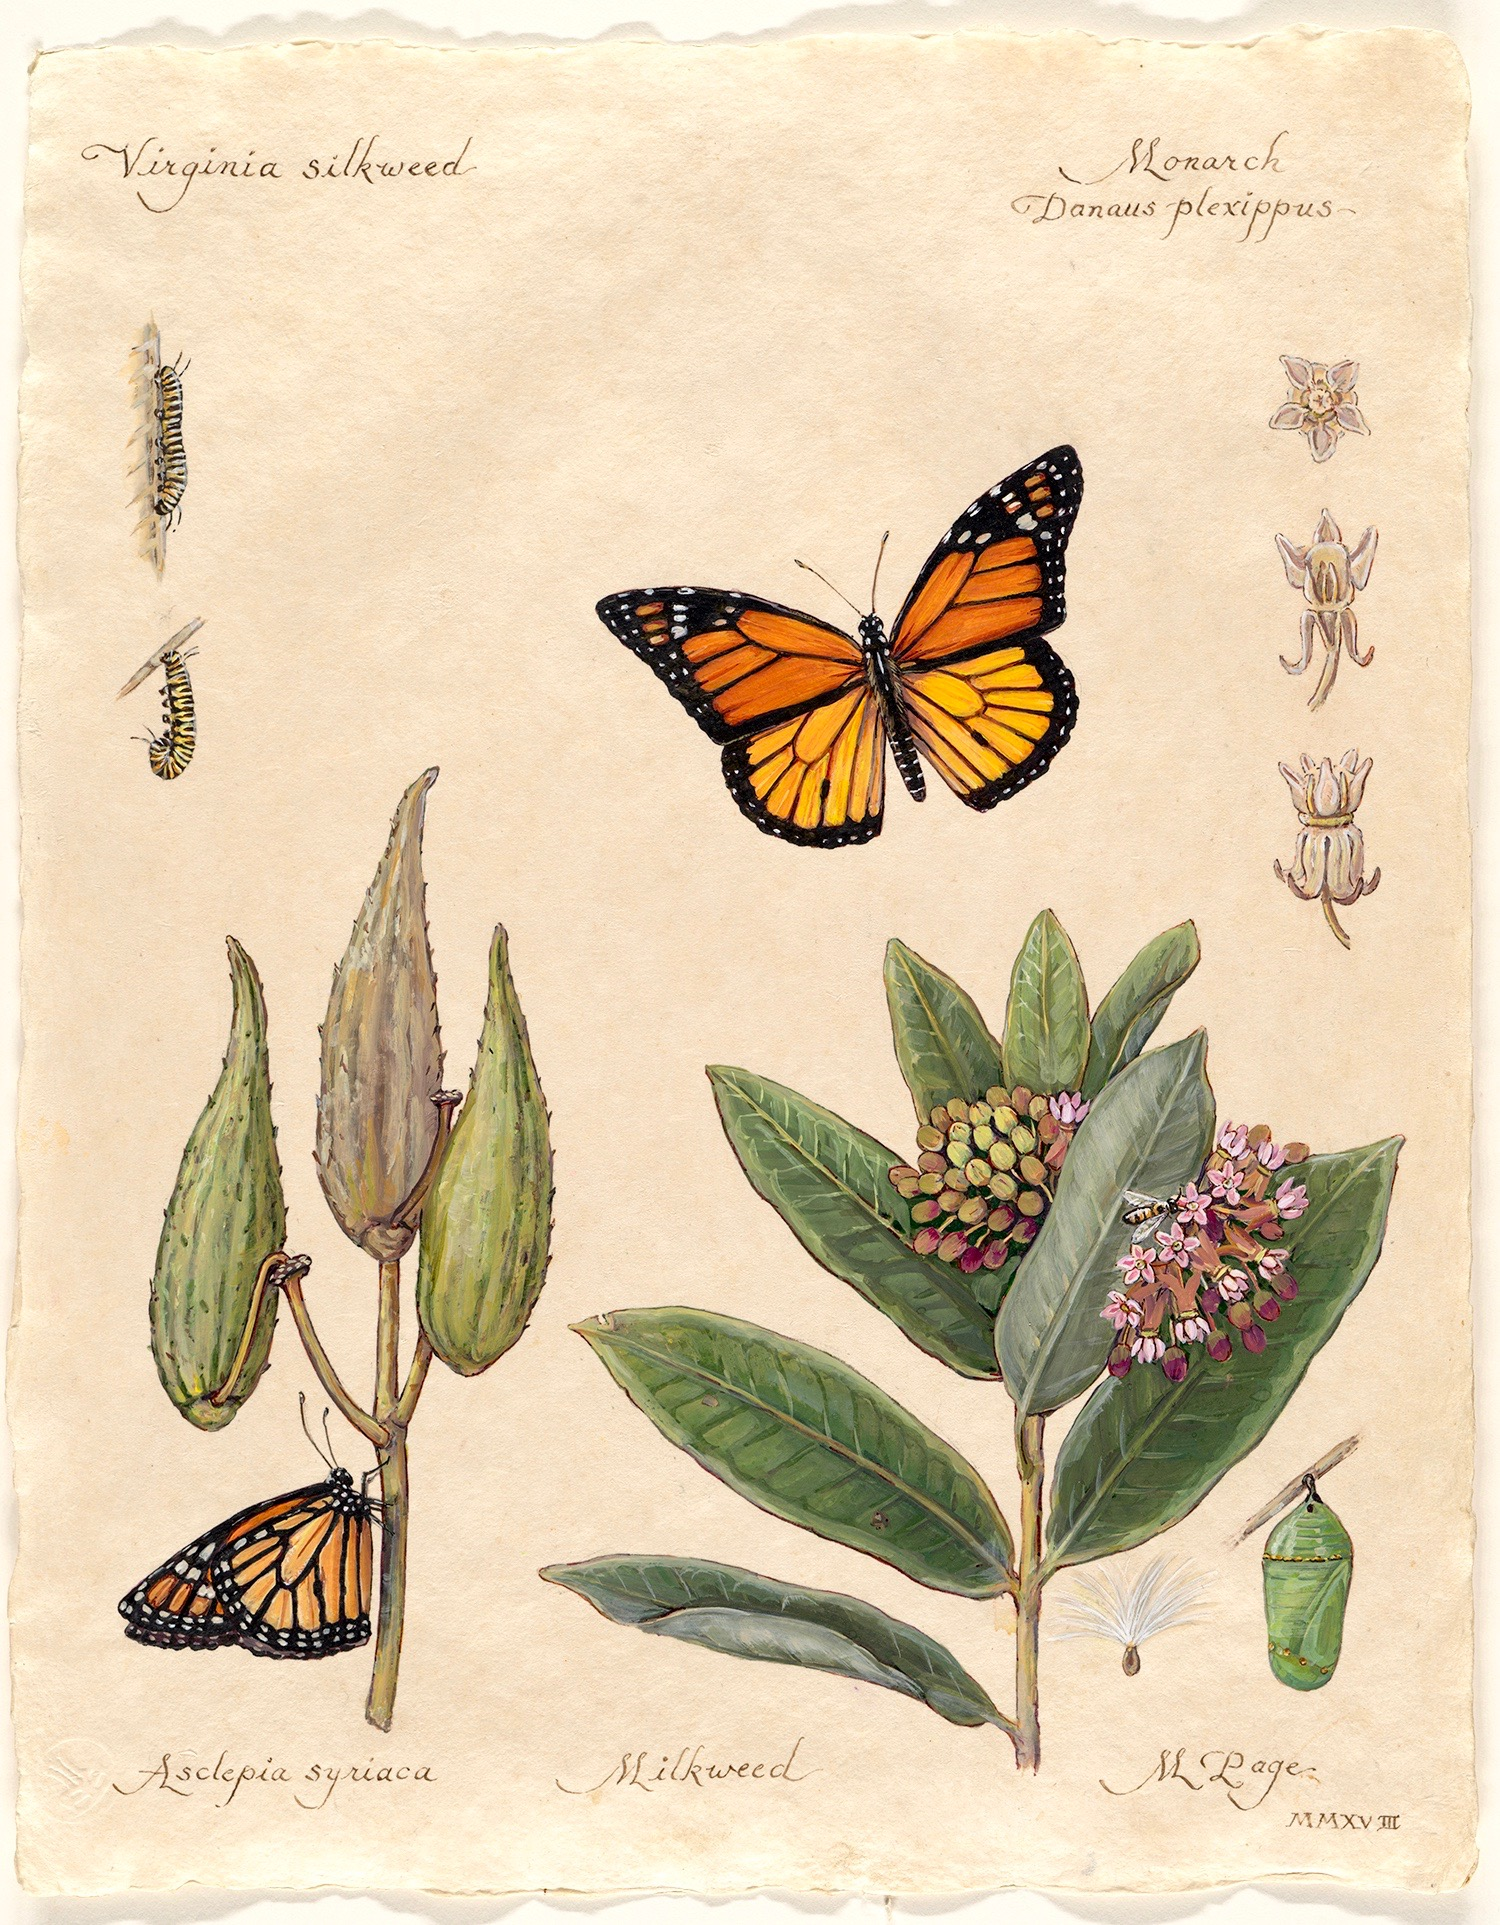 """Monarch on Virginia Silkweed II  Milkweed Plant with Blossoms and Seed Pods Metamorphosis Studies, Emergence Stages   11""""x14"""" sheet – $180"""